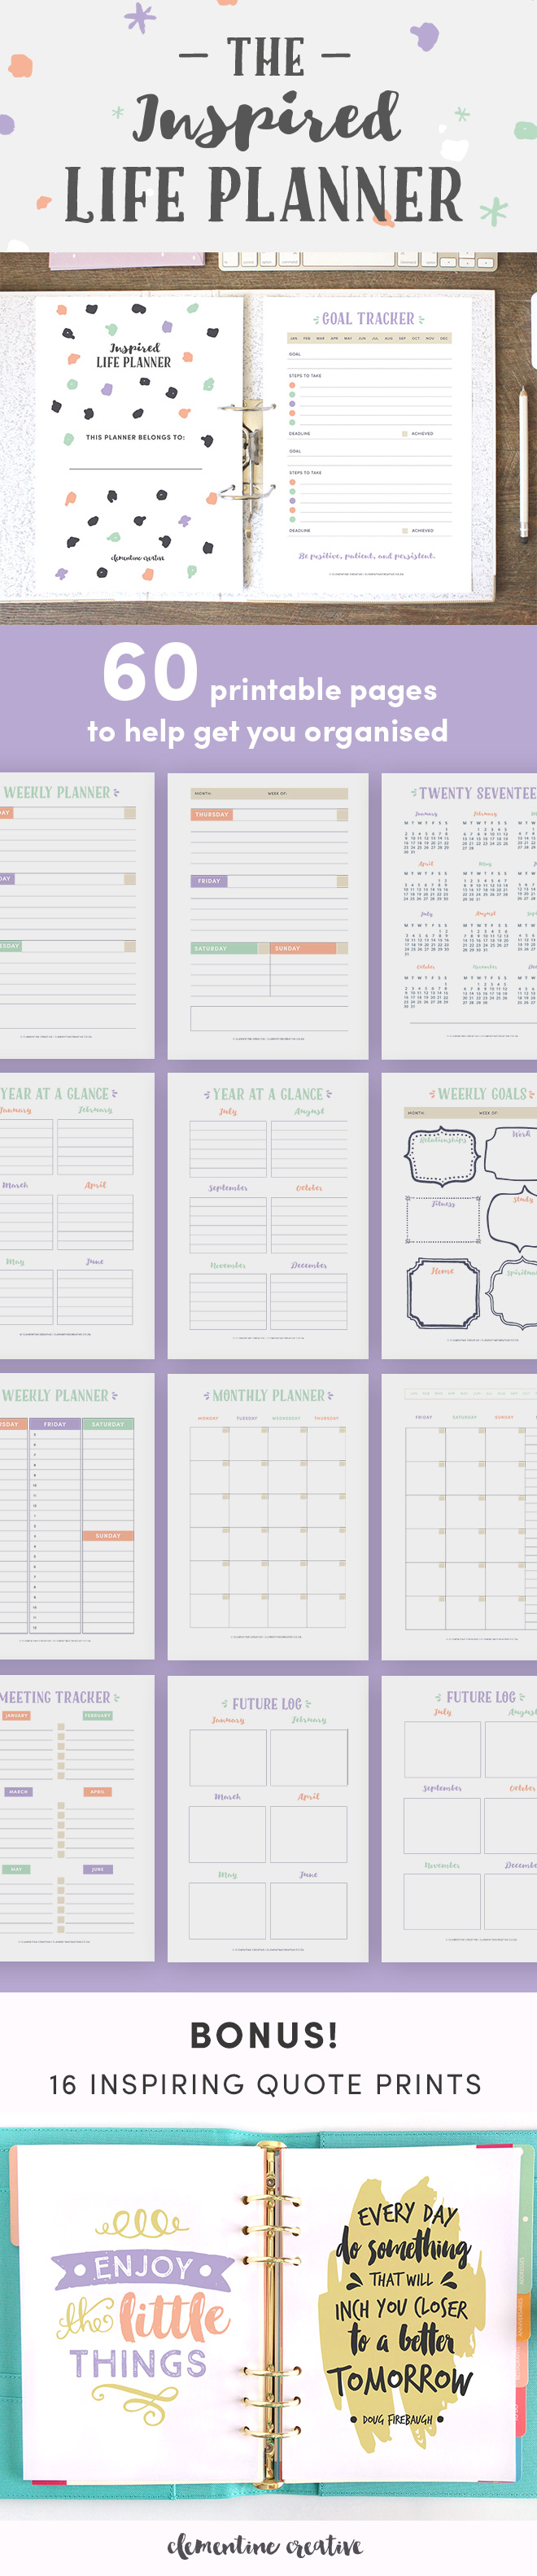 This is an image of Obsessed Free Printable Life Planner